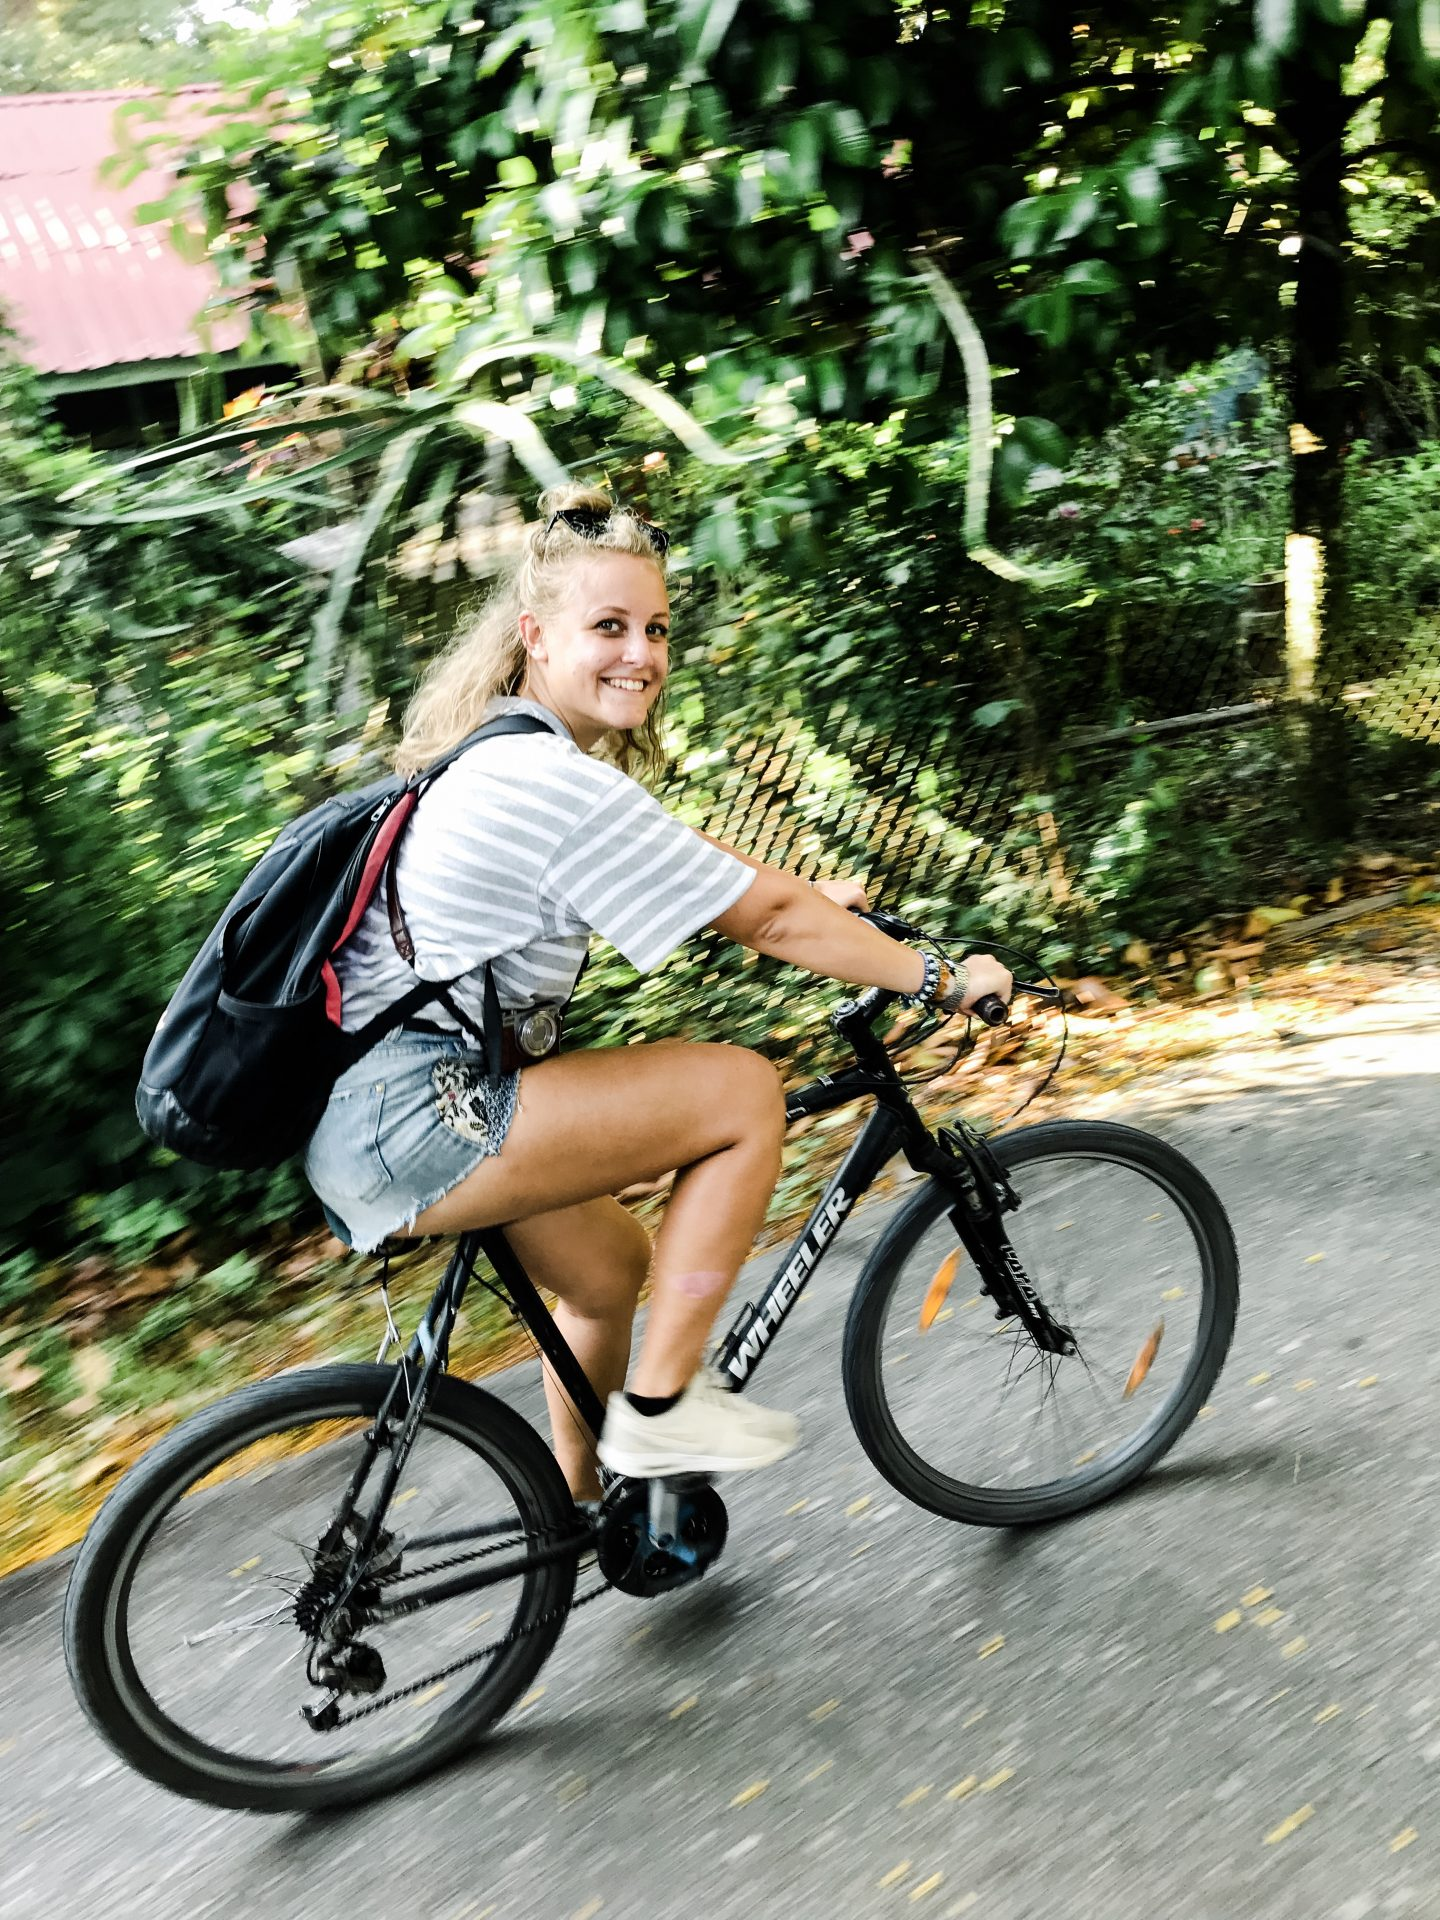 Pulau Ubin: me on a bike